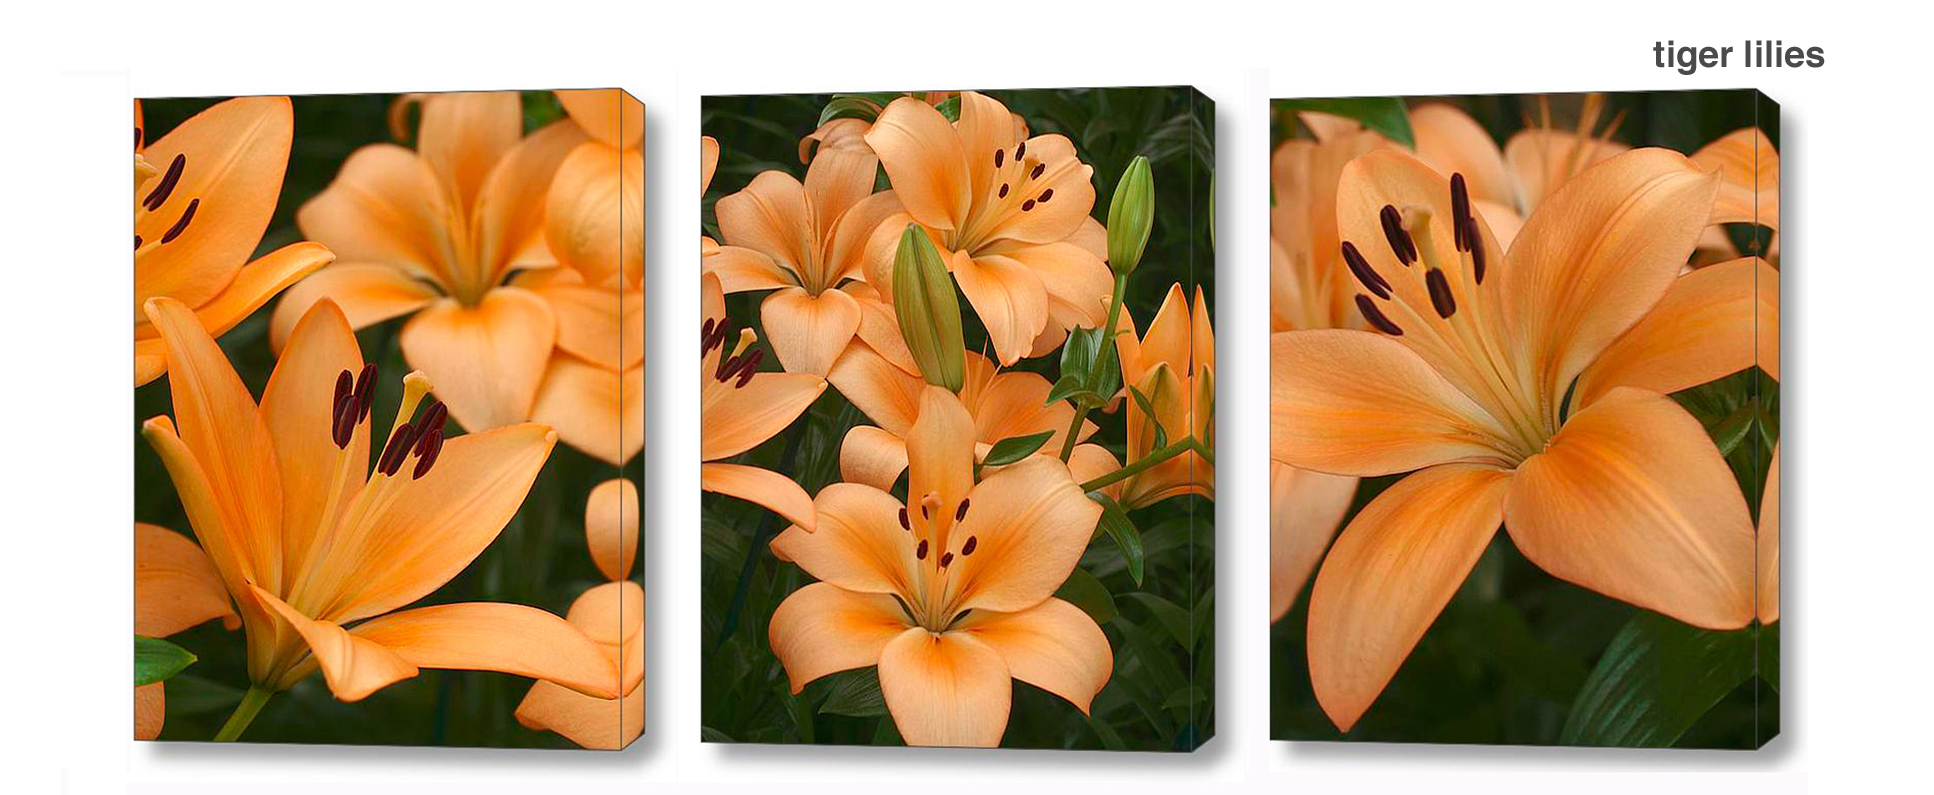 tiger lily series - Floral Series Wall Decor Macro Photography Matted & Giclée Canvas Prints